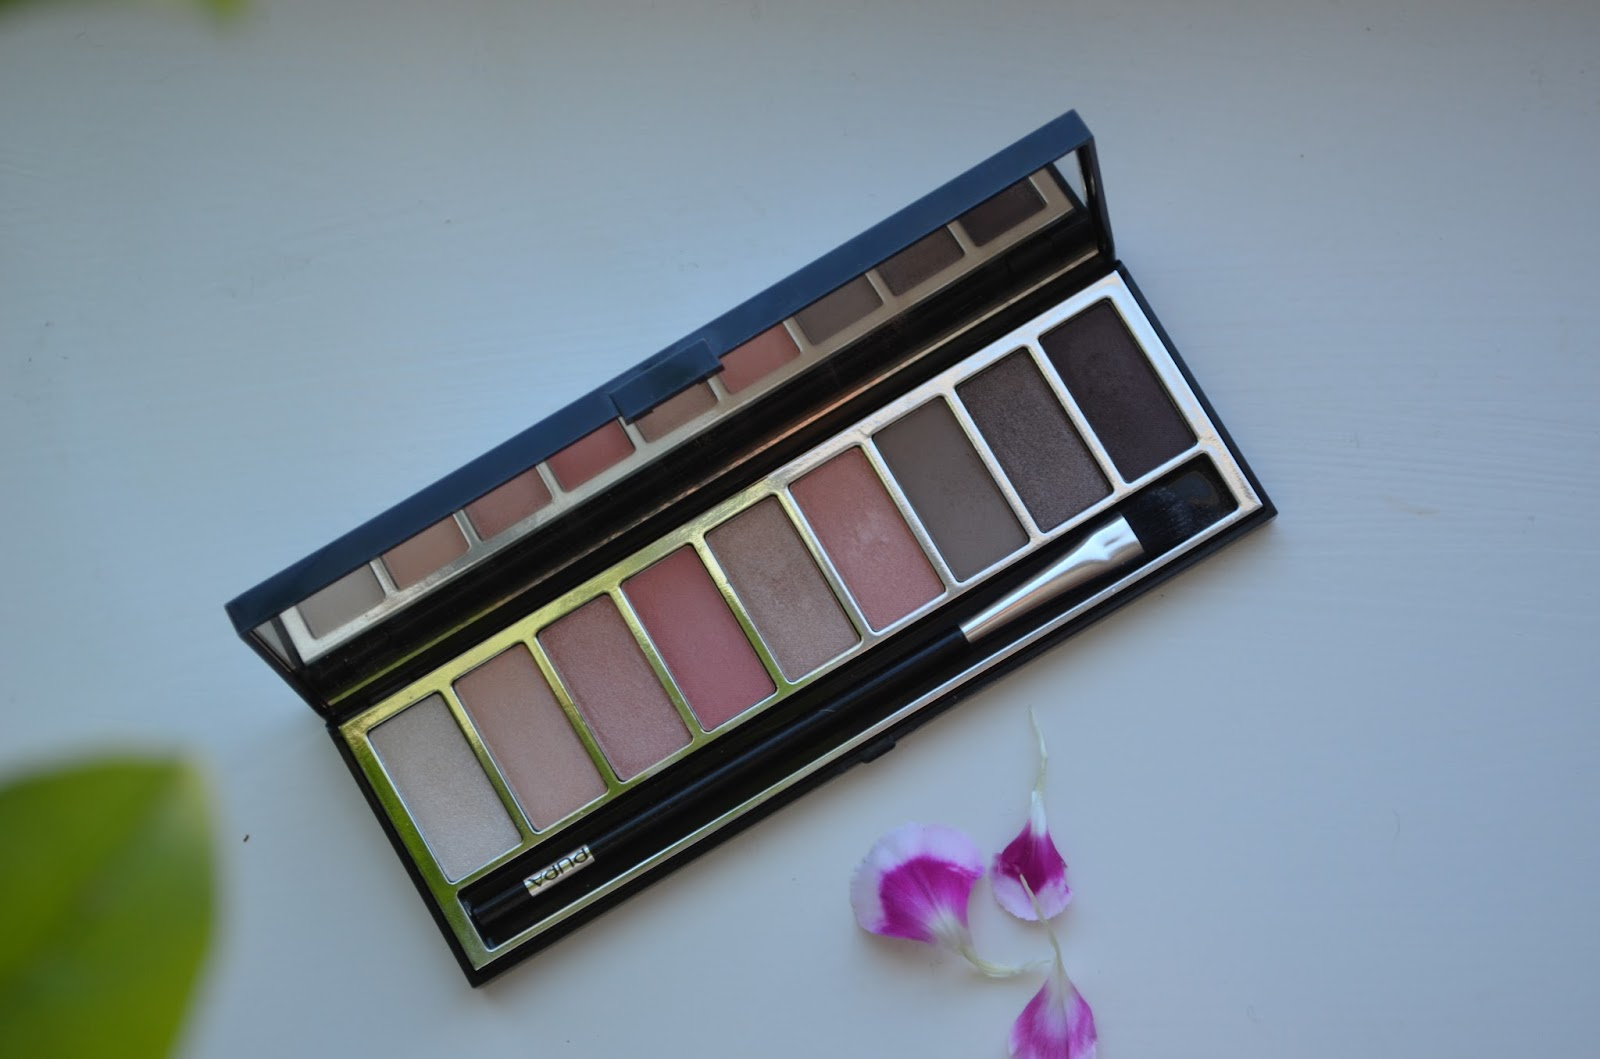 467281ba72d The packaging of the palette is very sleek and contains a brush, mirror and  9 beautiful eye shadows.